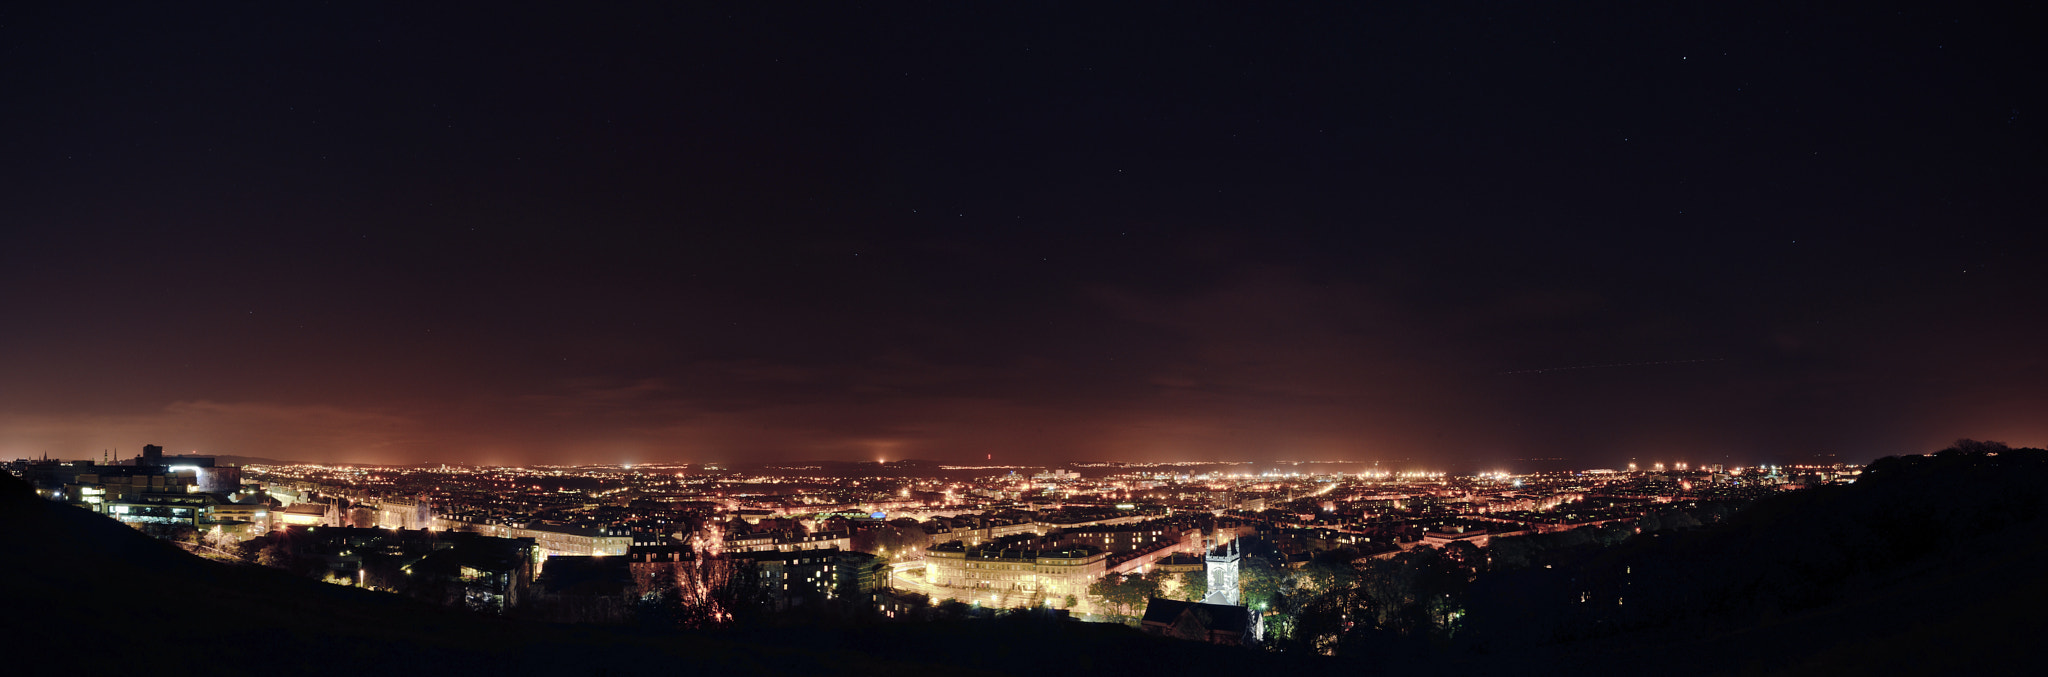 Photograph North Edinburgh, from Calton Hill by Shane Rounce on 500px